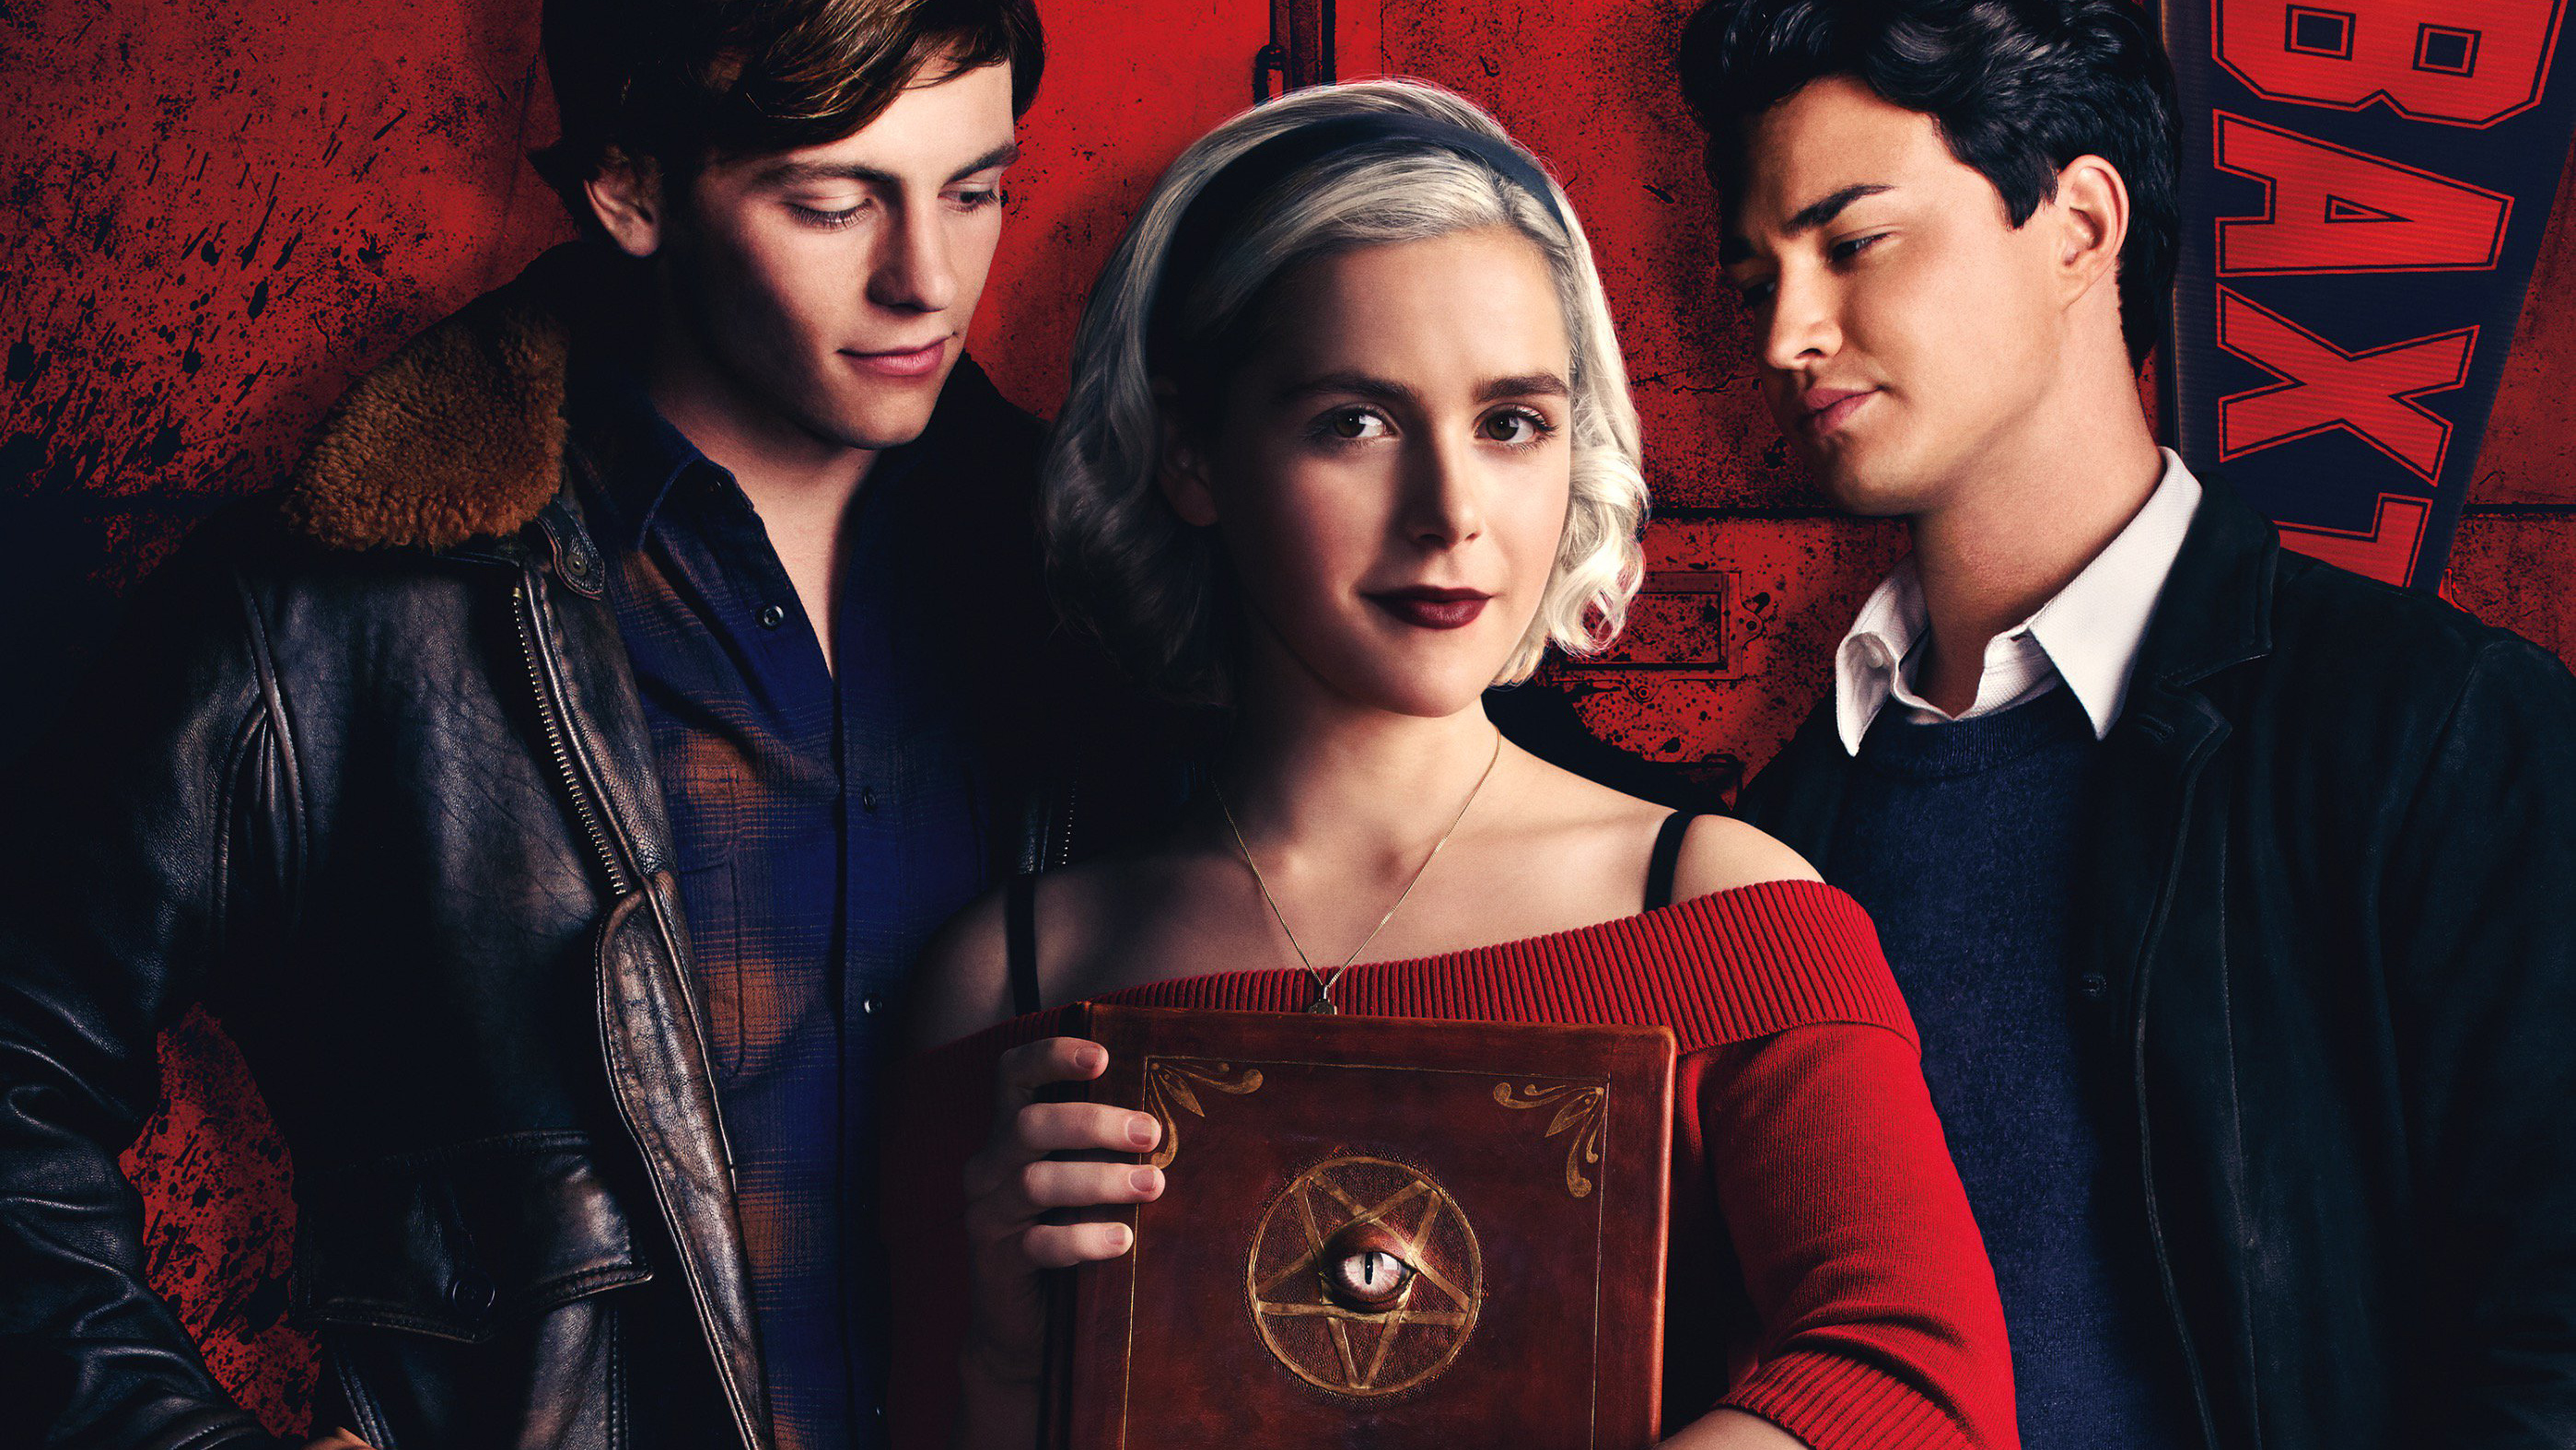 The Chilling Adventures Of Sabrina Part 2, HD Tv Shows, 4k Wallpapers, Images, Backgrounds